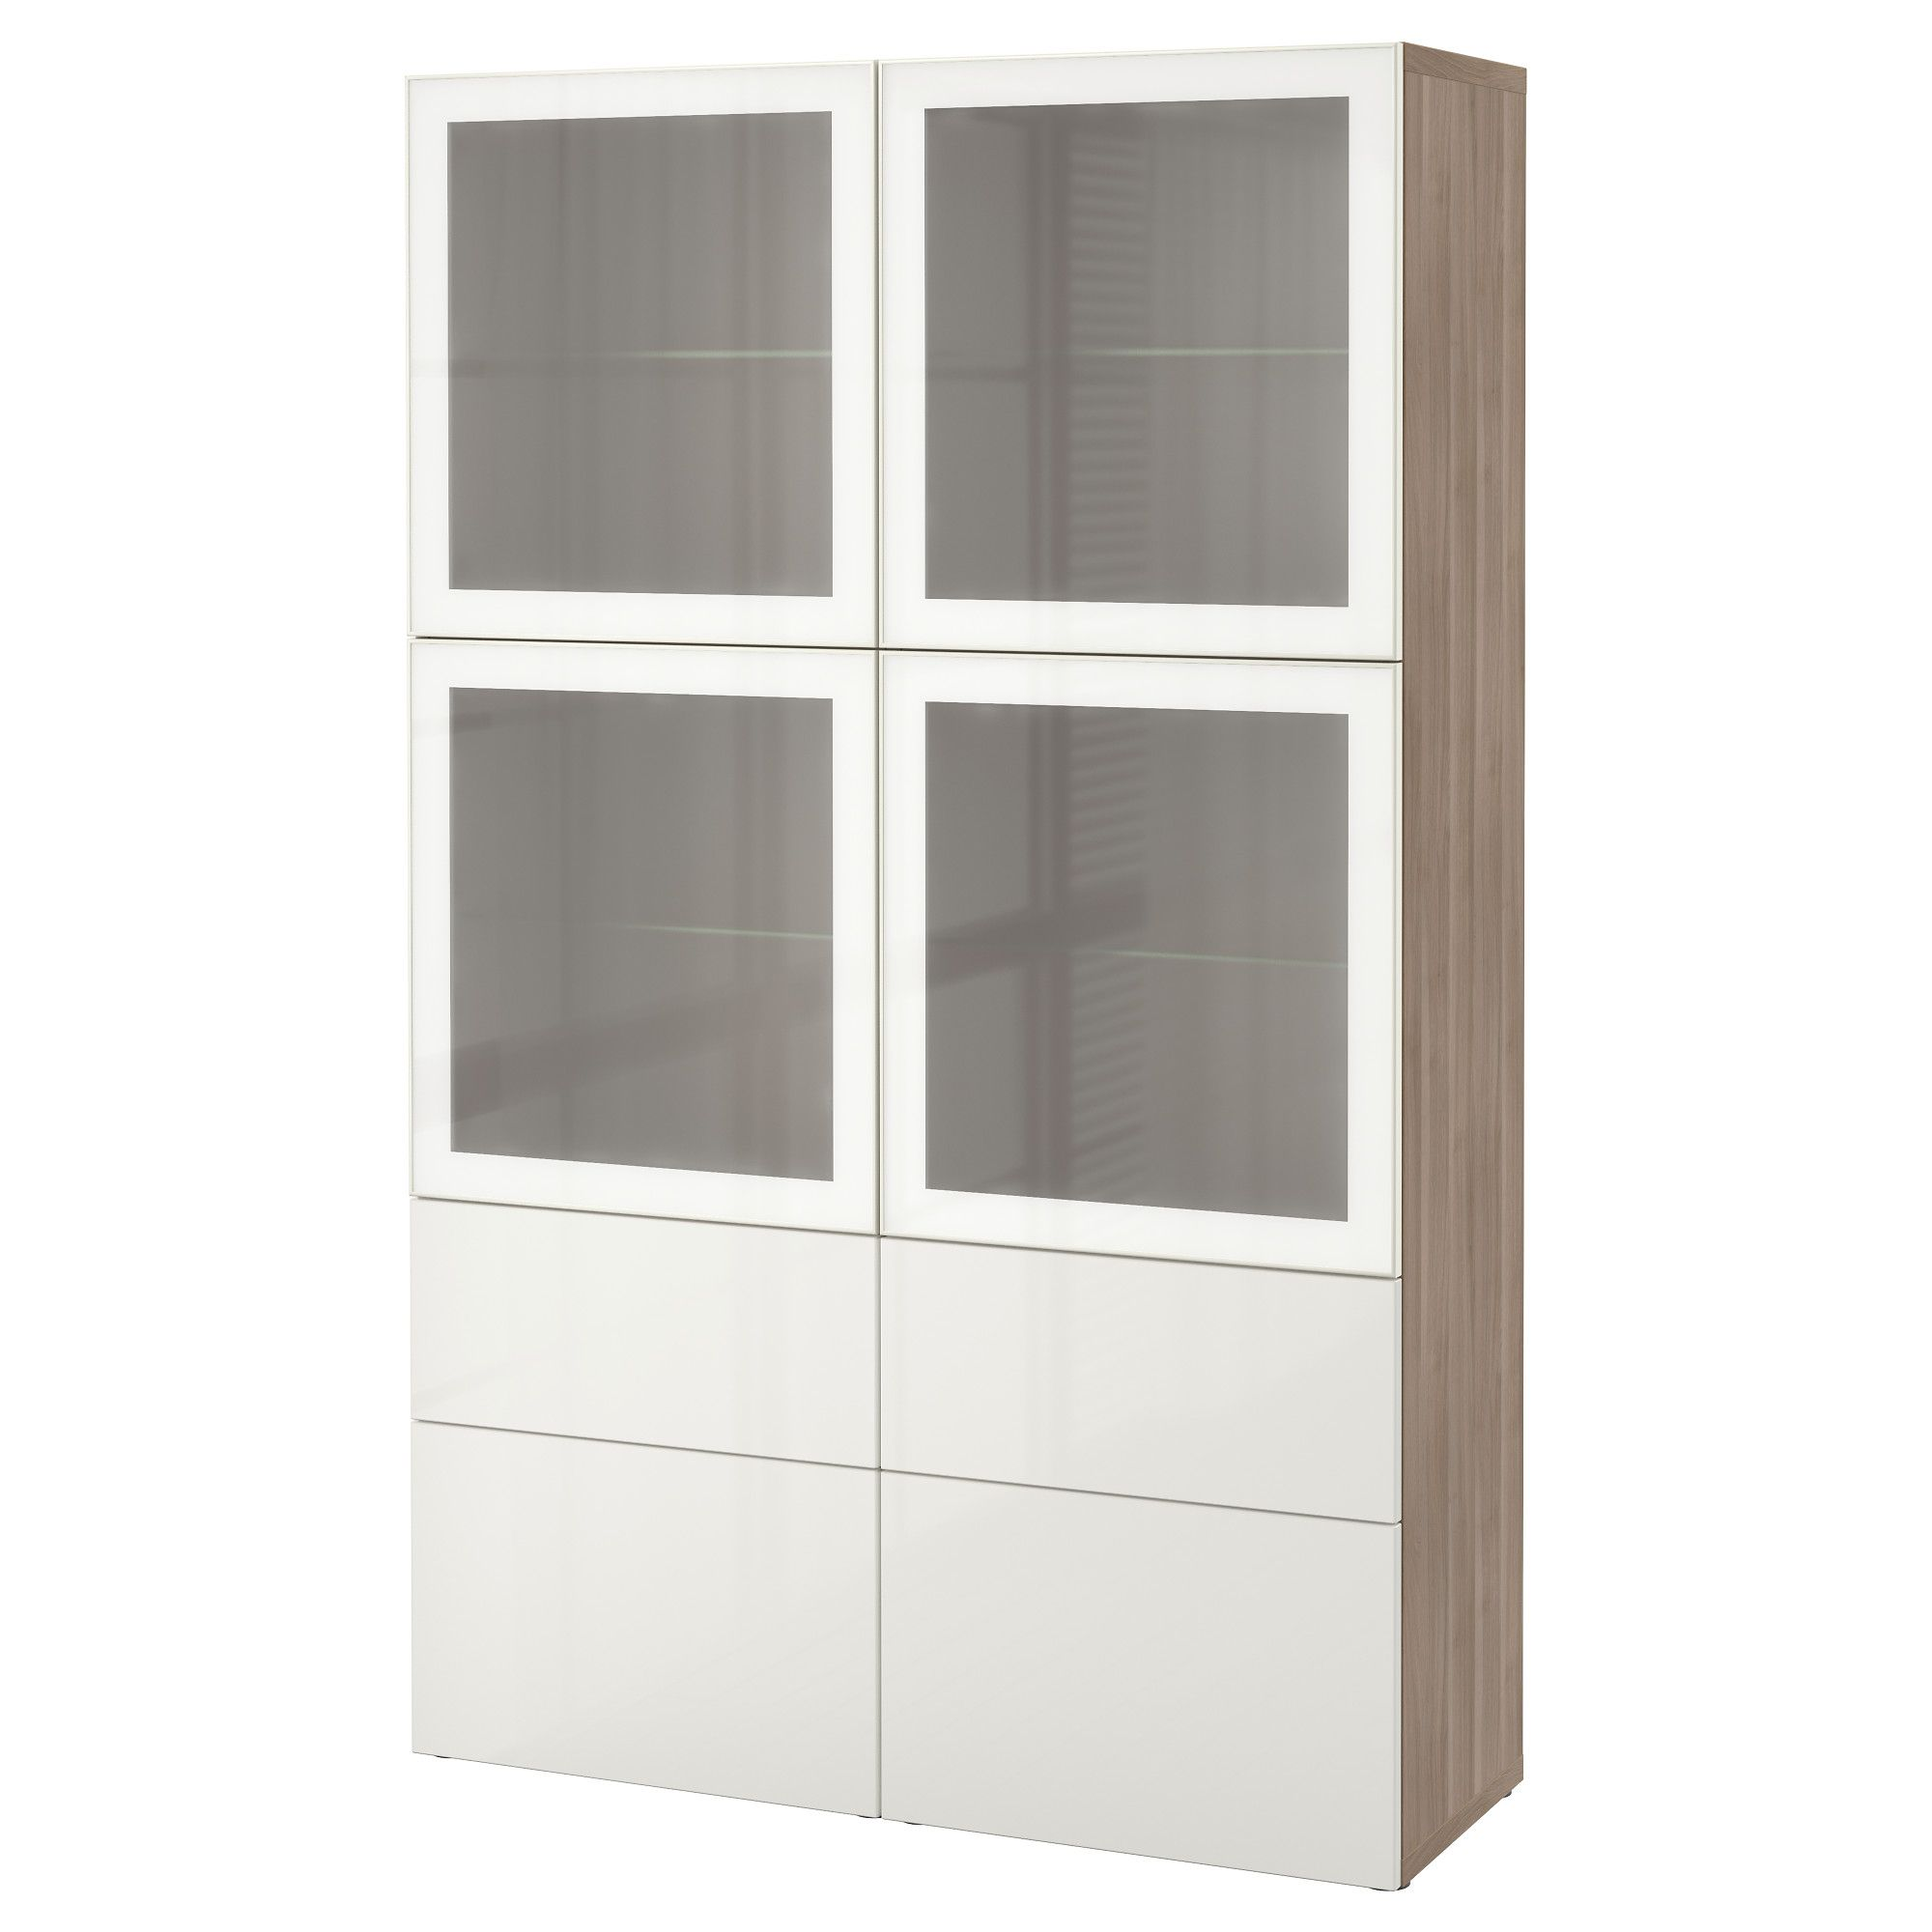 ikea best storage combination w glass doors walnut effect light rh pinterest com